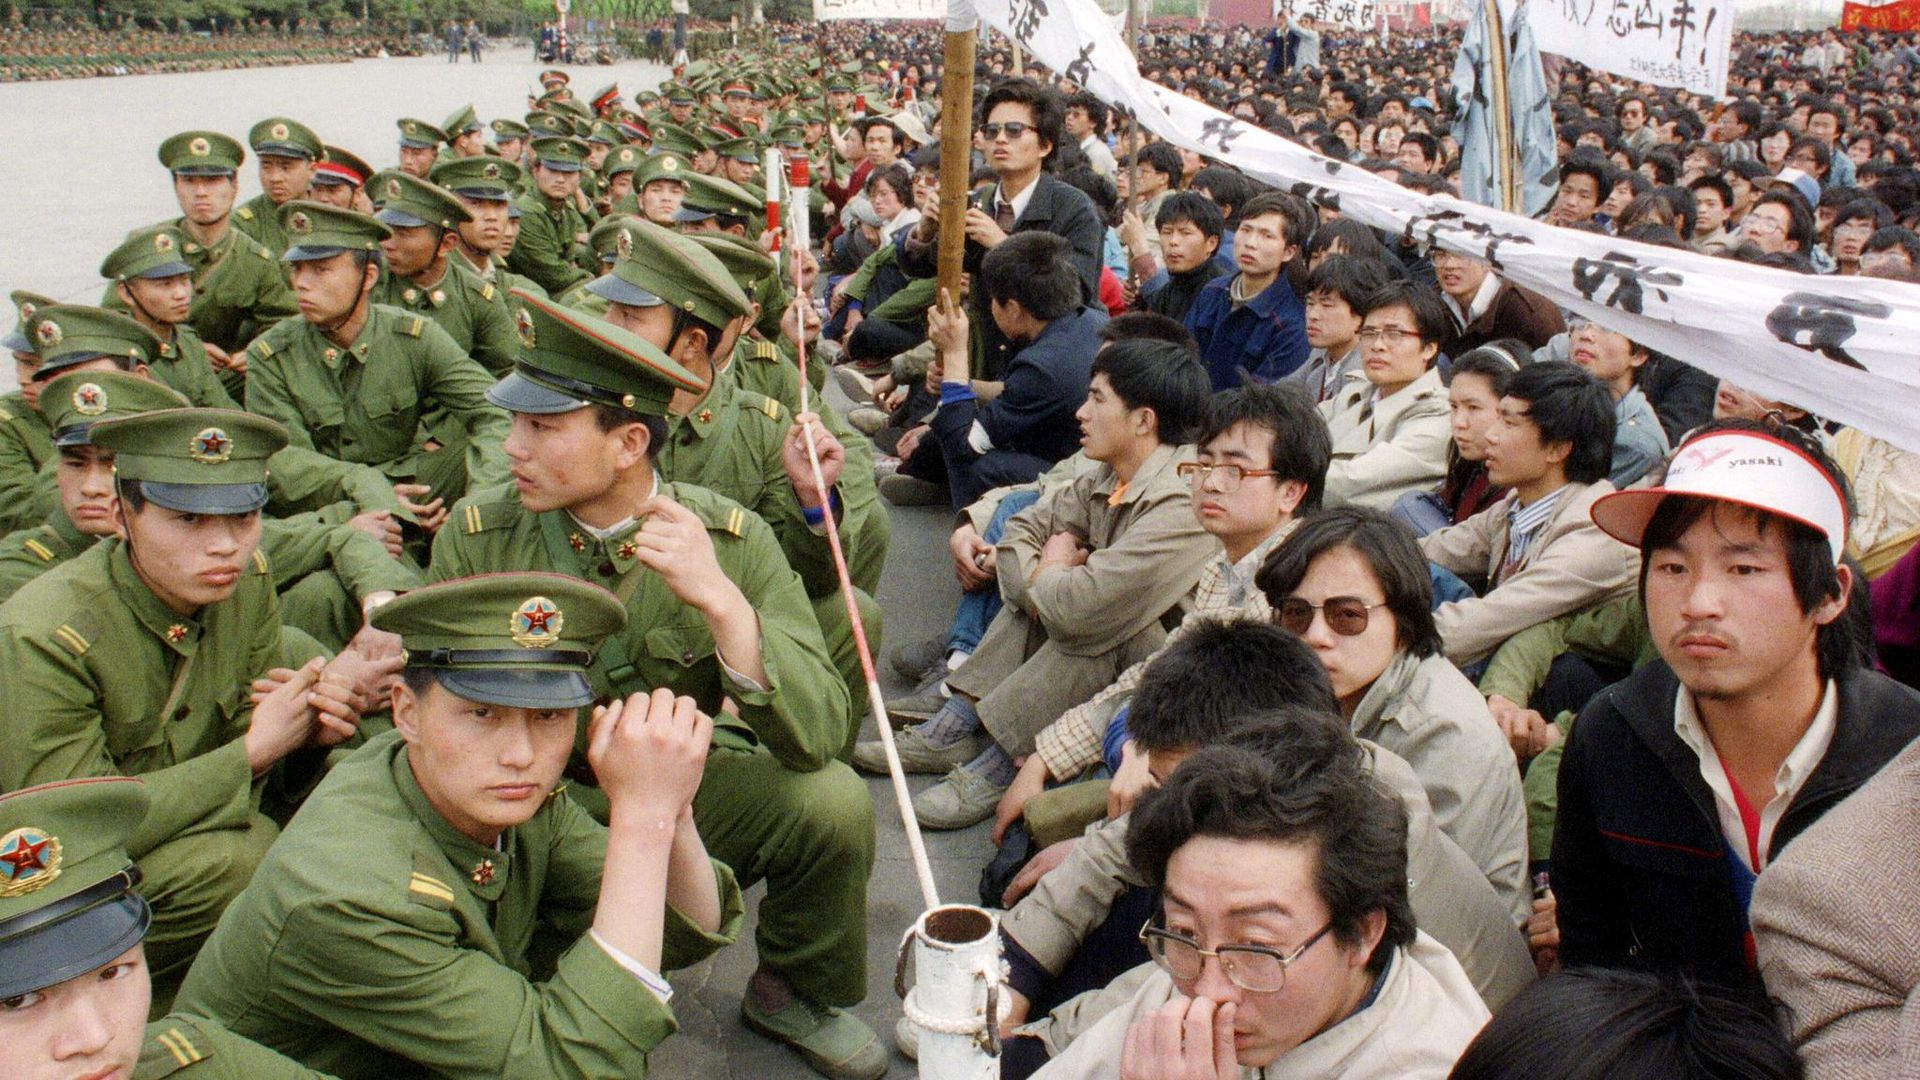 China's Tiananmen Square crackdown continues 30 years later